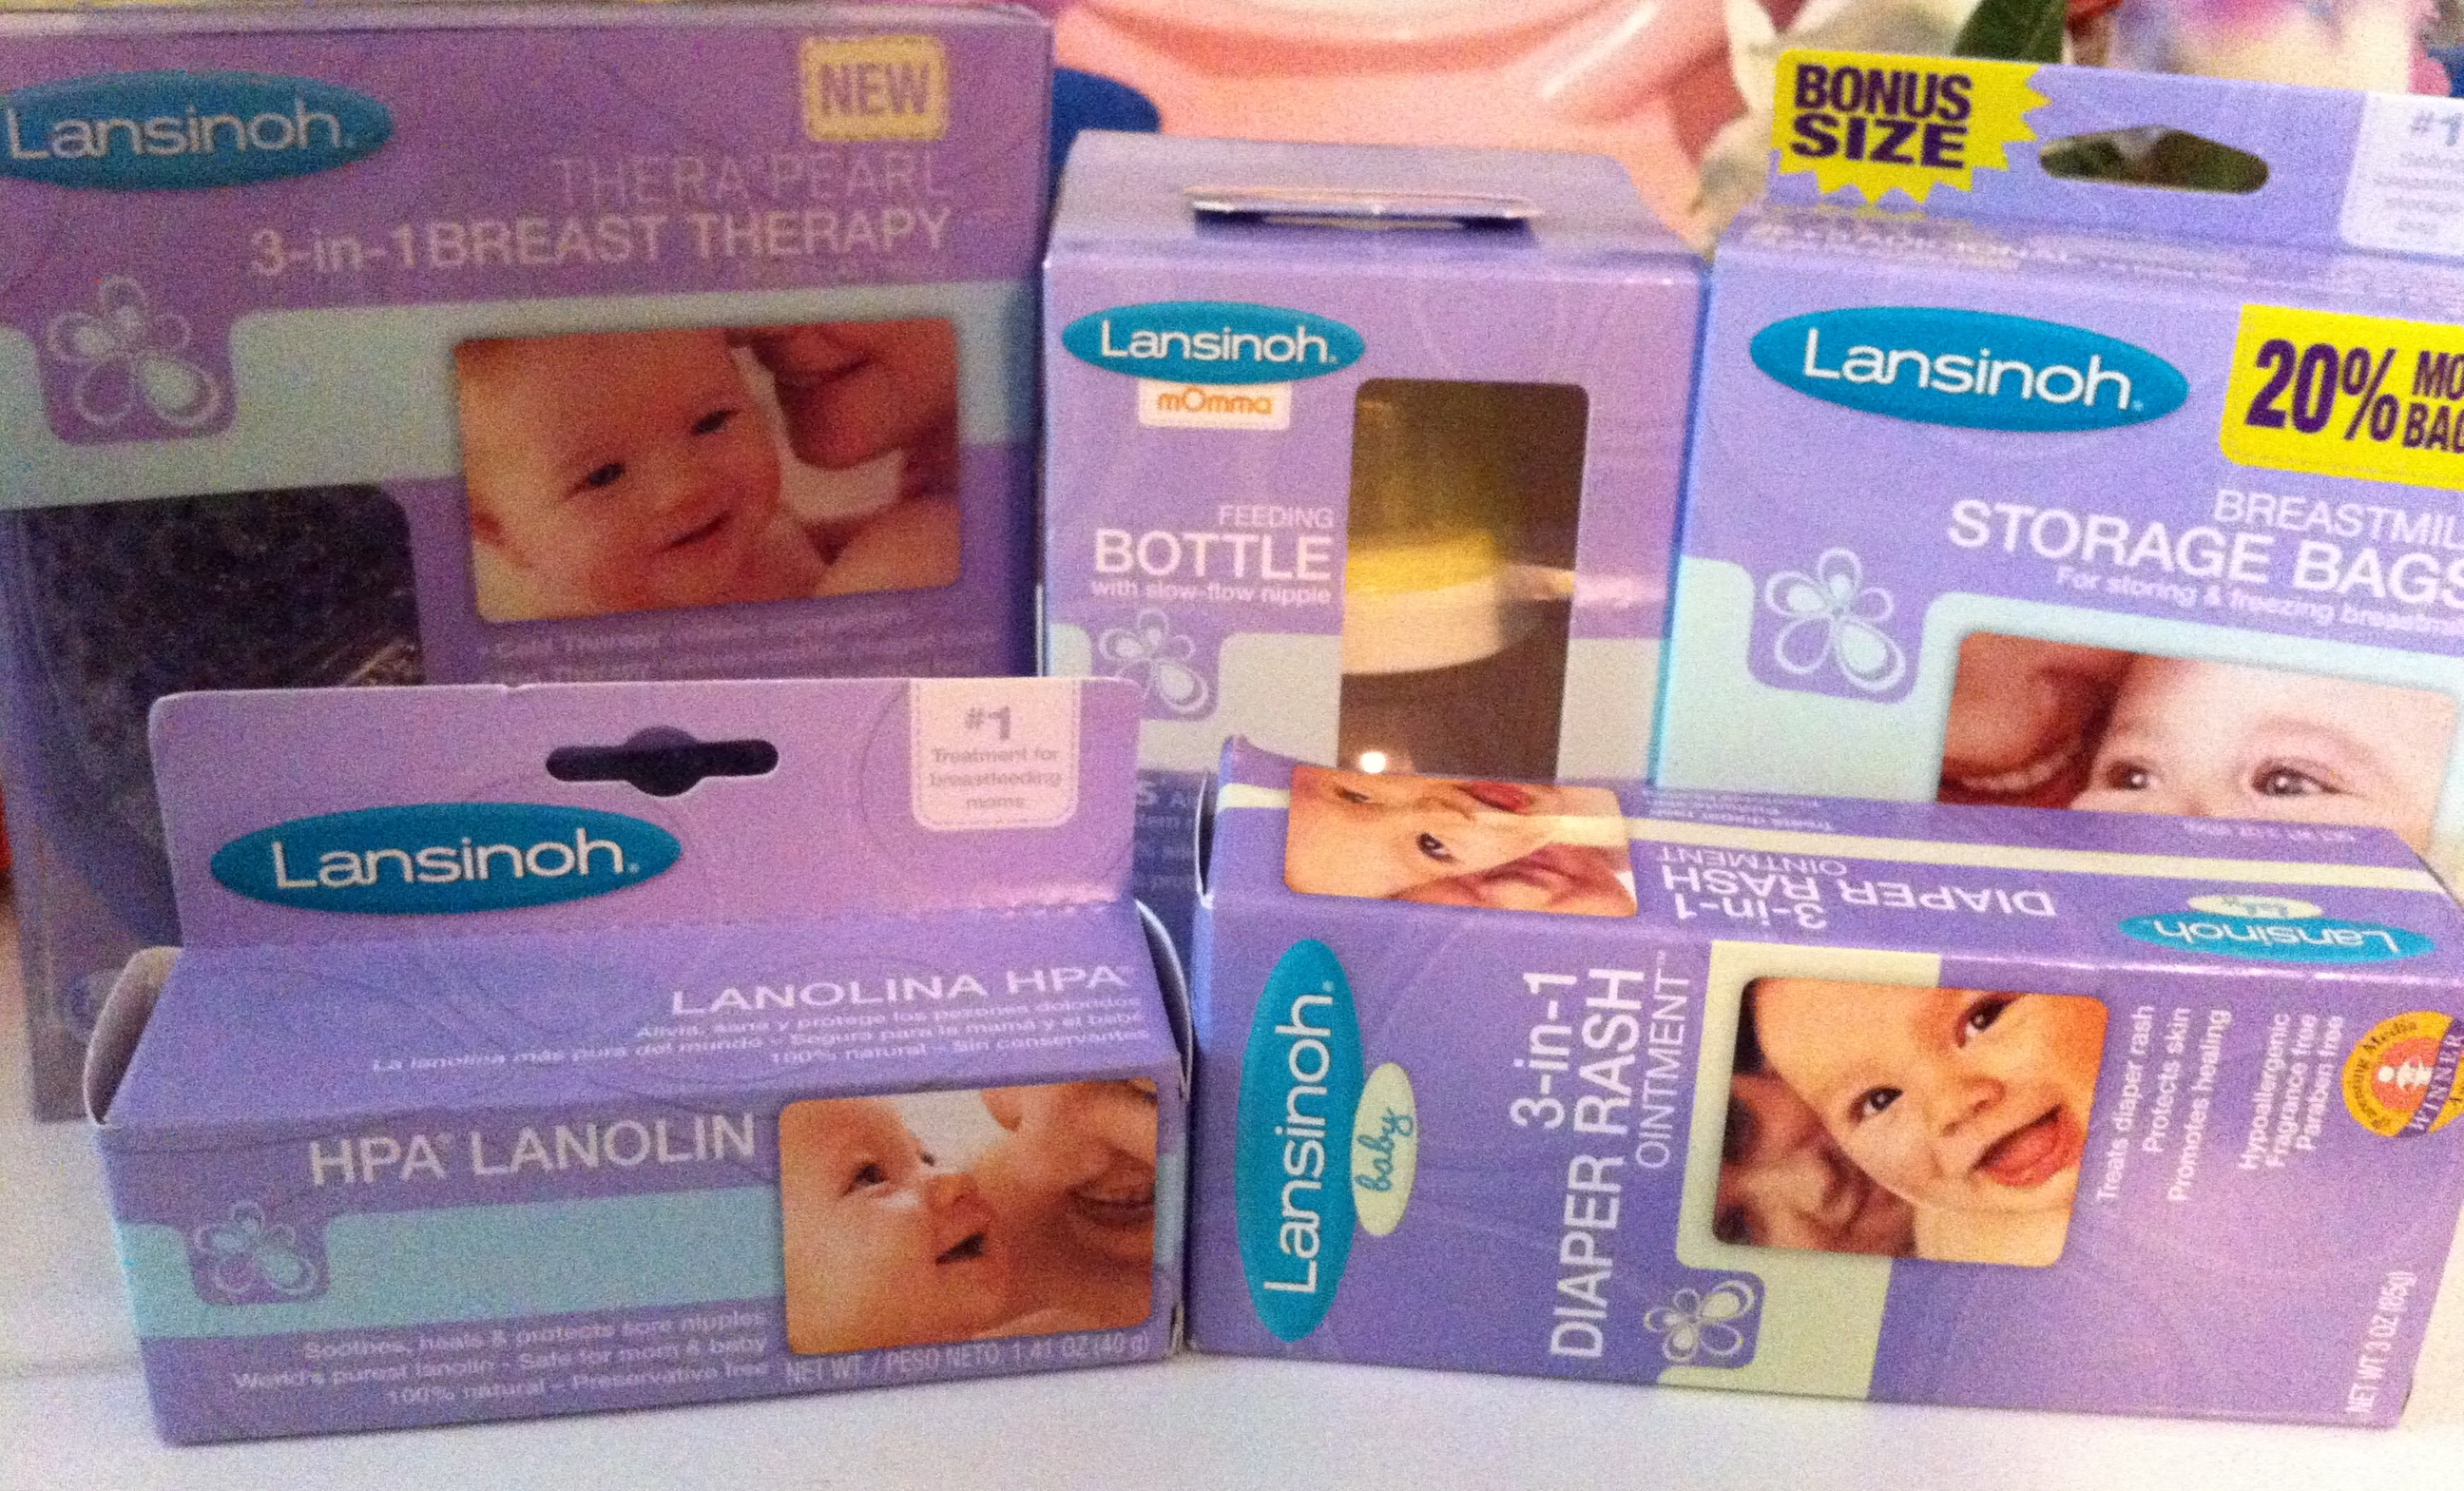 lansinoh breastfeeding products